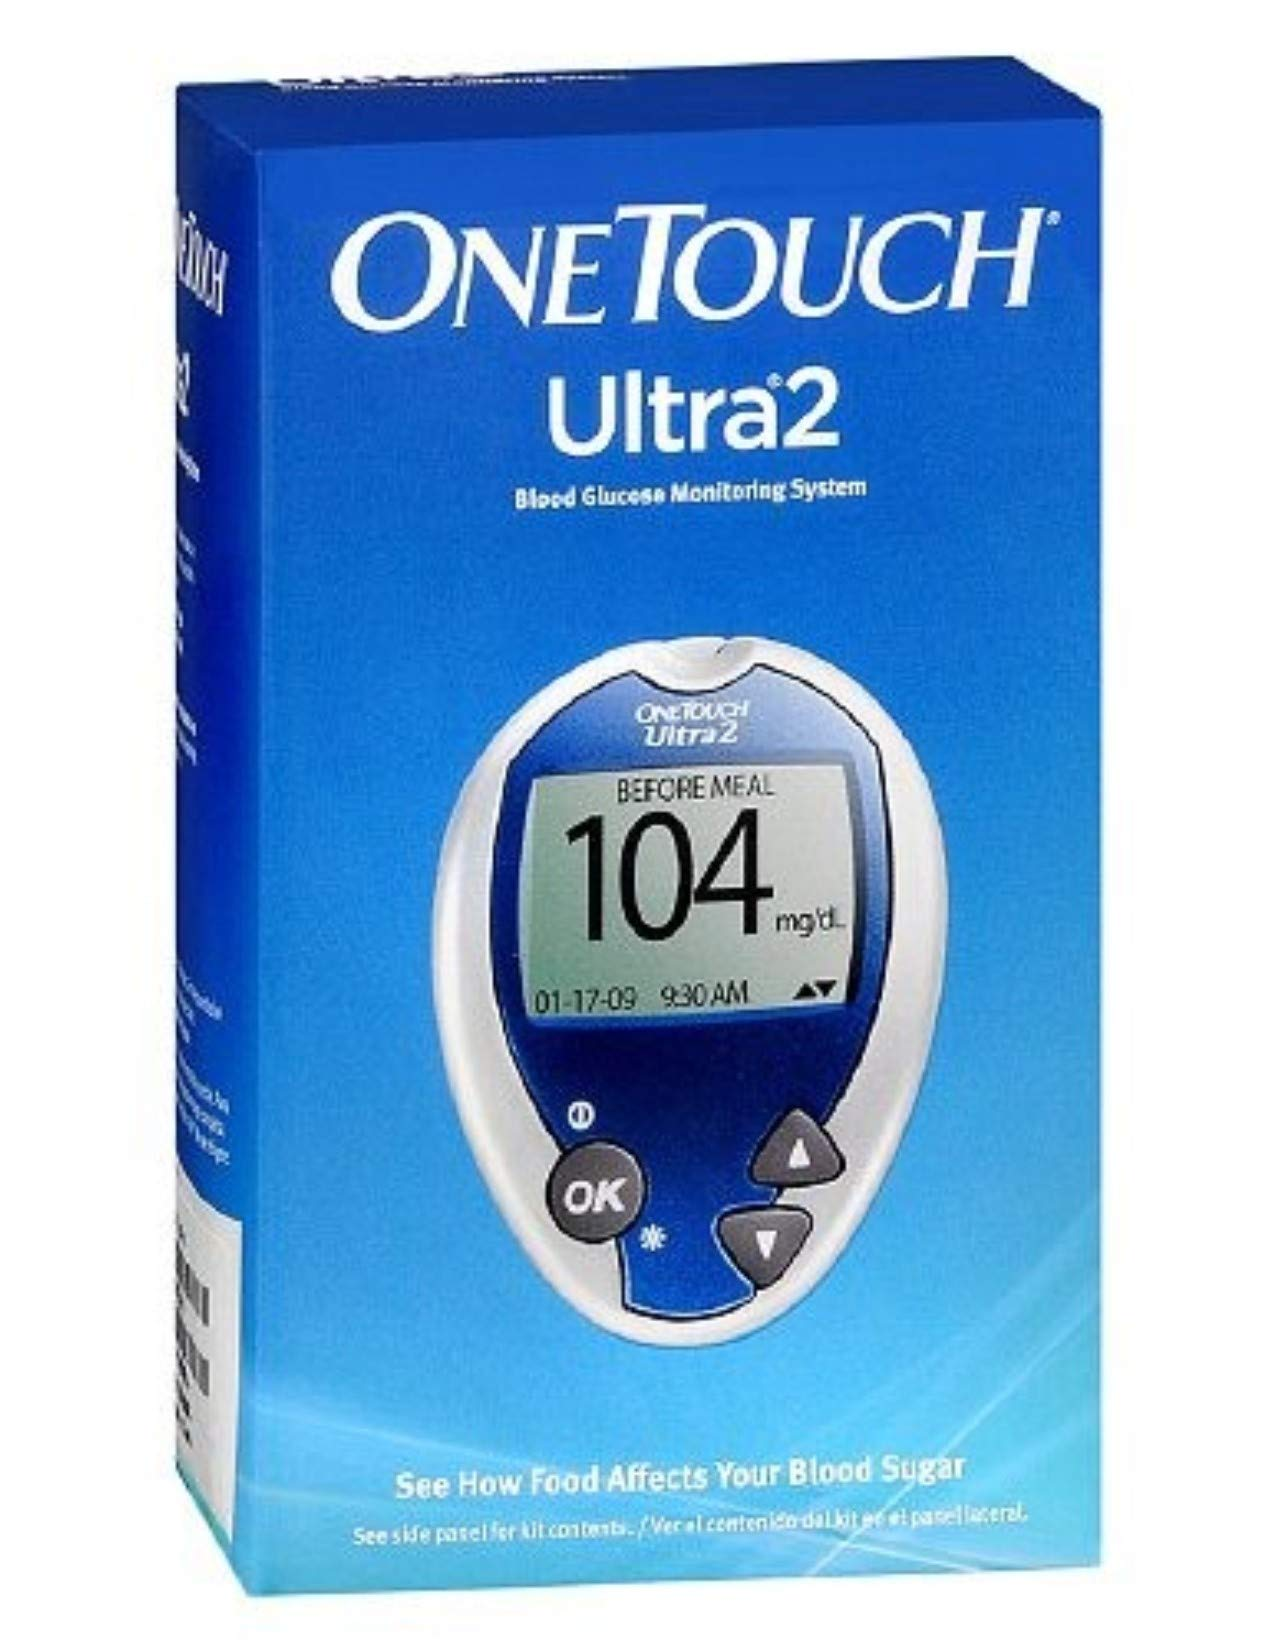 Onetouch Ultra2 Glucose Monitoring Kit with Improved Delica Plus Lancet Device by Onetouch Ultra2